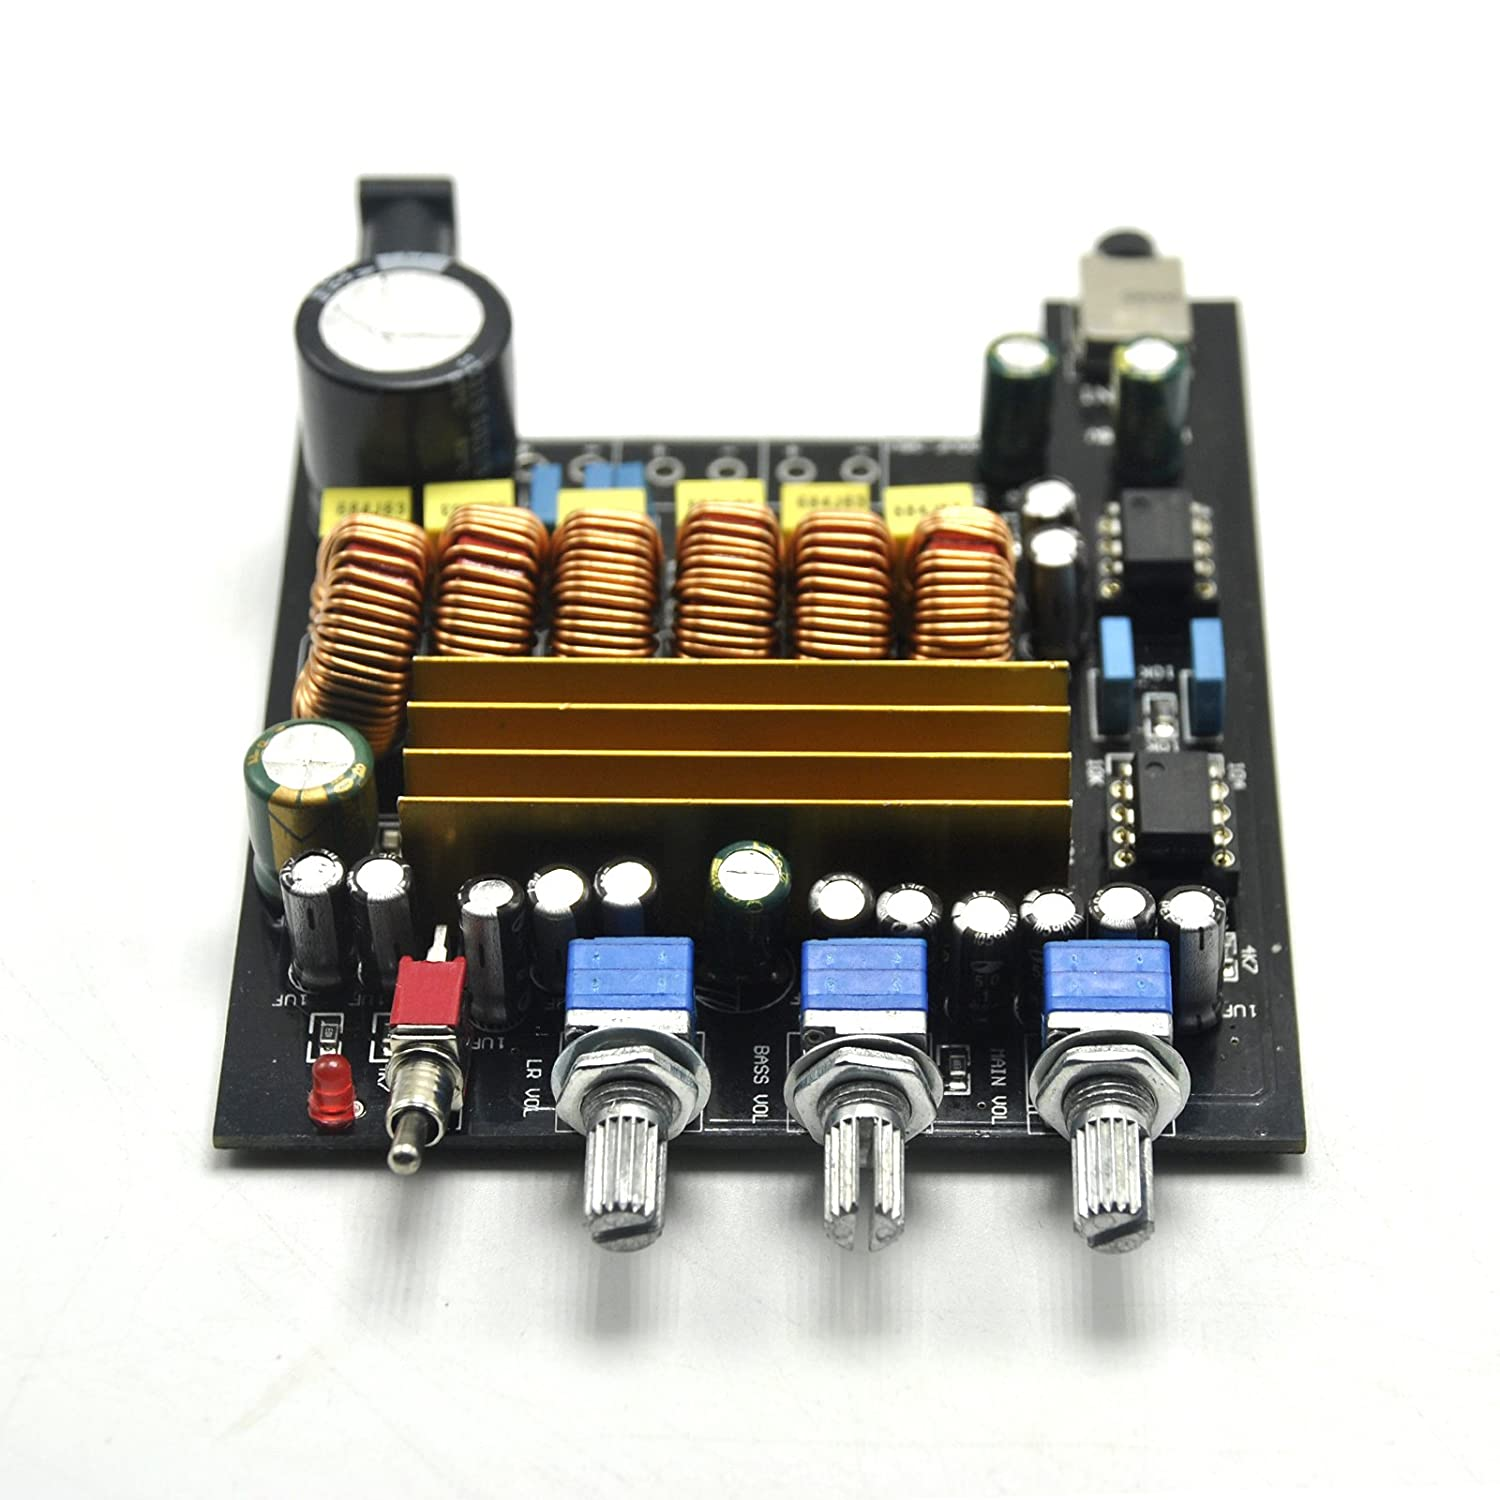 Tpa3116d2 21 Hifi Digital Subwoofer Amplifier Board 50w Speaker Pcb Circuit Hasl Electronic Printed Maker 100w Beyond Lm1875 Home Audio Theater